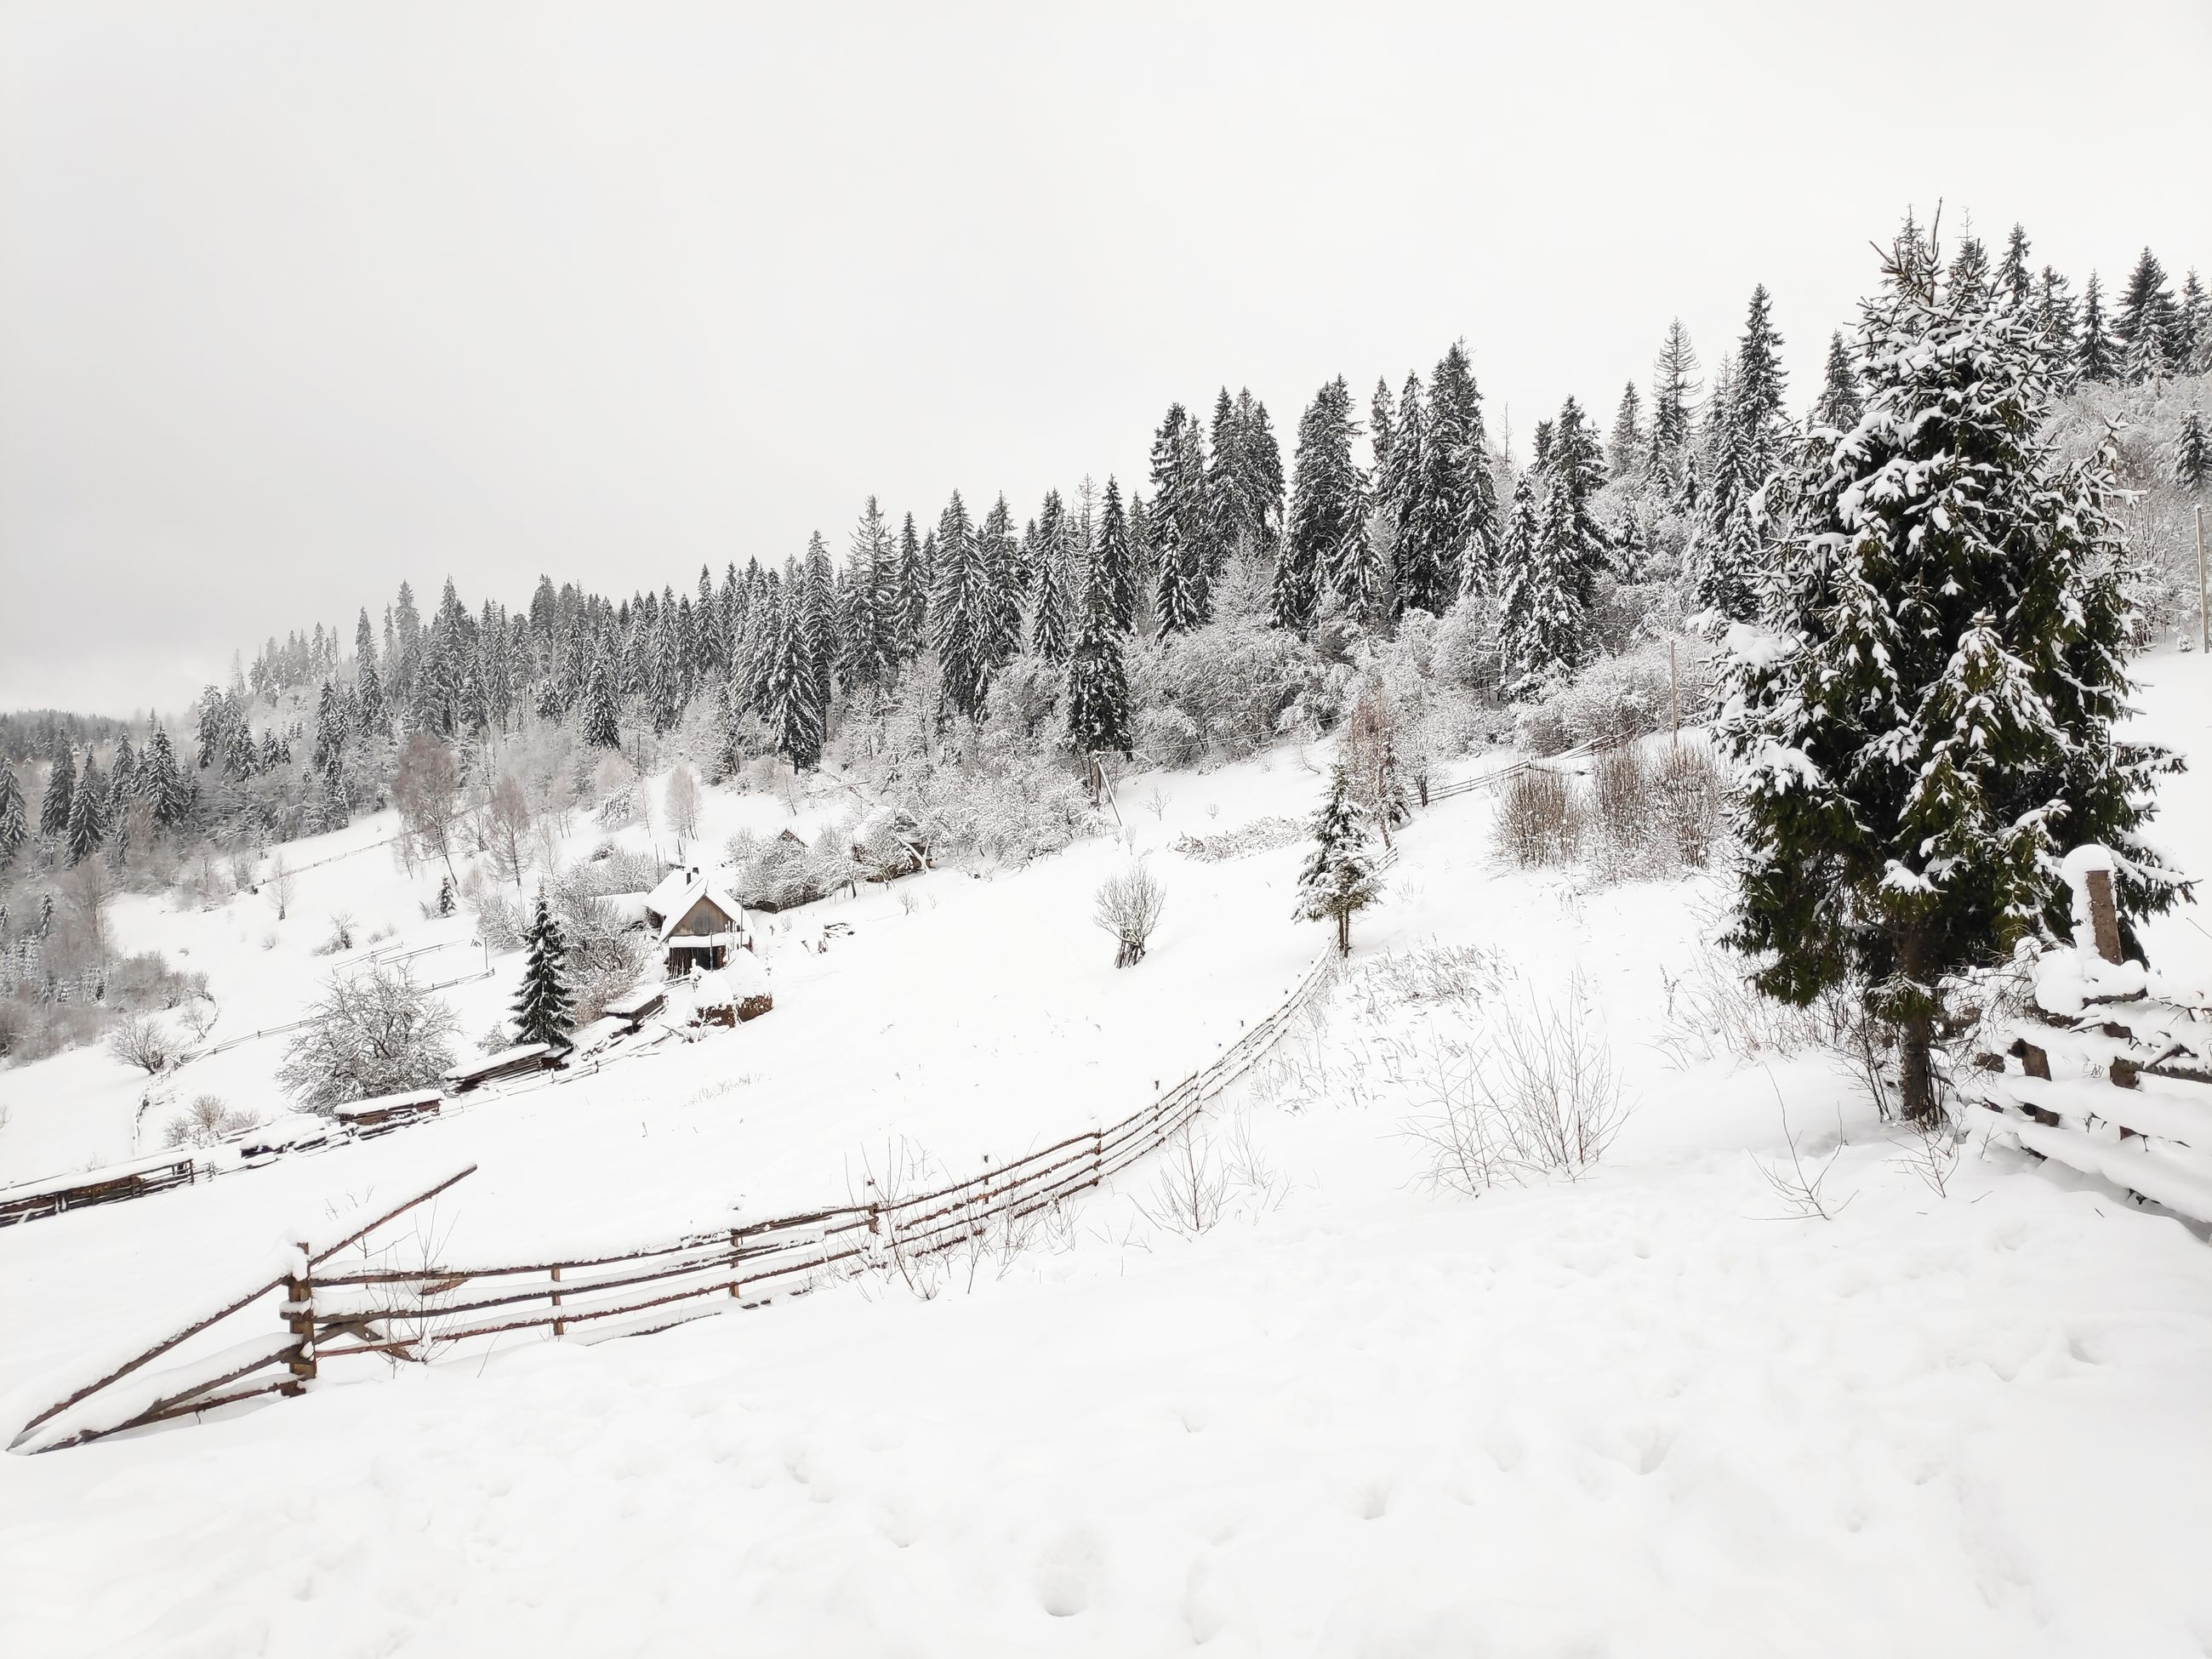 snow, winter, cold temperature, beauty in nature, scenics - nature, tree, plant, nature, tranquility, white color, sky, mountain, covering, tranquil scene, land, non-urban scene, environment, no people, landscape, pine tree, snowing